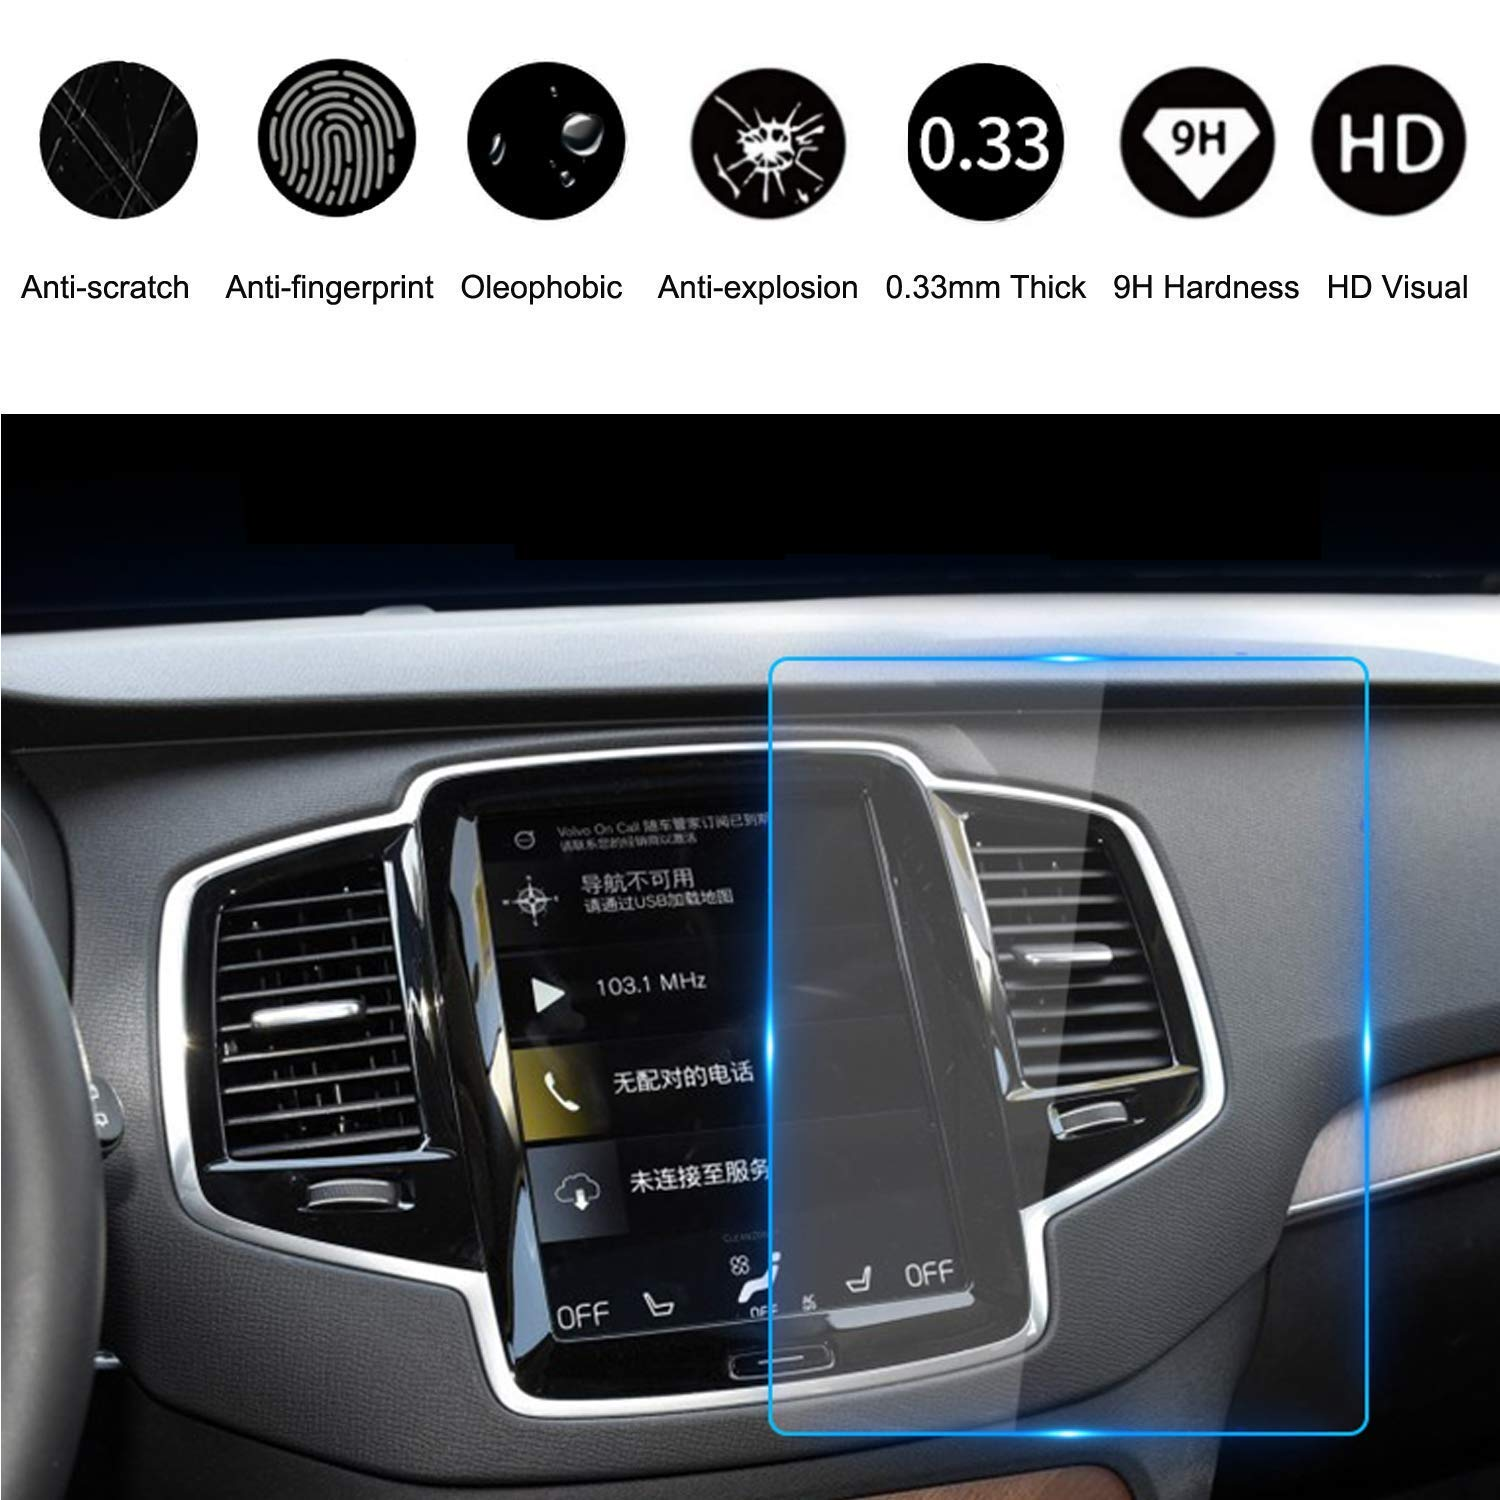 HiMoliwa 2017-2019 Volvo Car Navigation Touch Screen Protector for V90 XC40 XC60 XC90 S90 9 Inch, Scratch-Resistant Ultra HD in-Dash Clear Tempered Glass Screen 9H Hardness 0.33mm Thickness(9in) by HiMoliwa